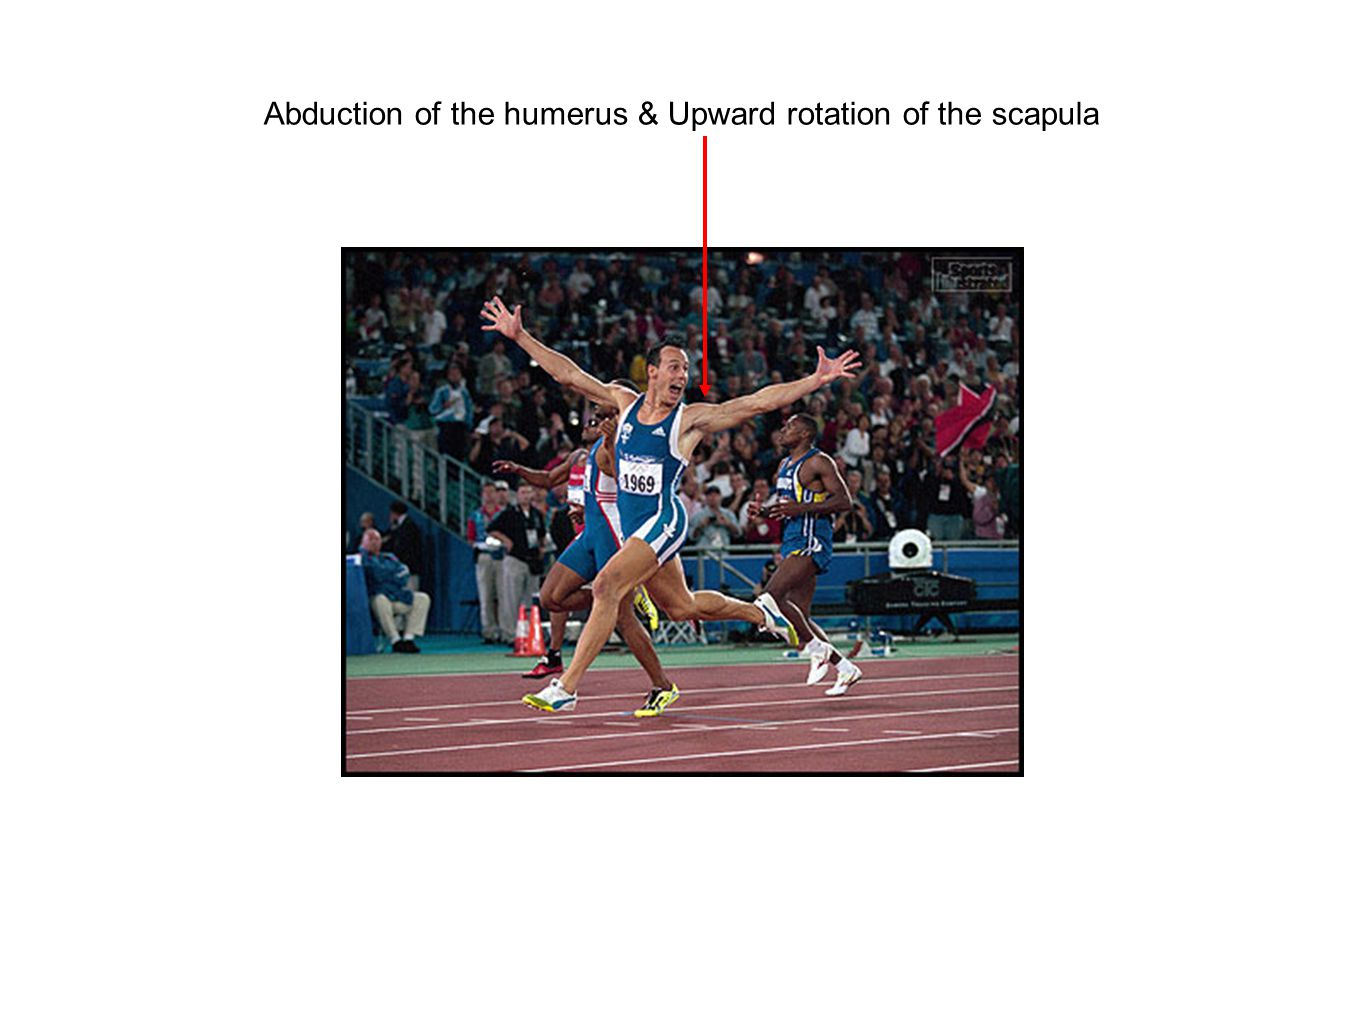 Abduction of the humerus & Upward rotation of the scapula